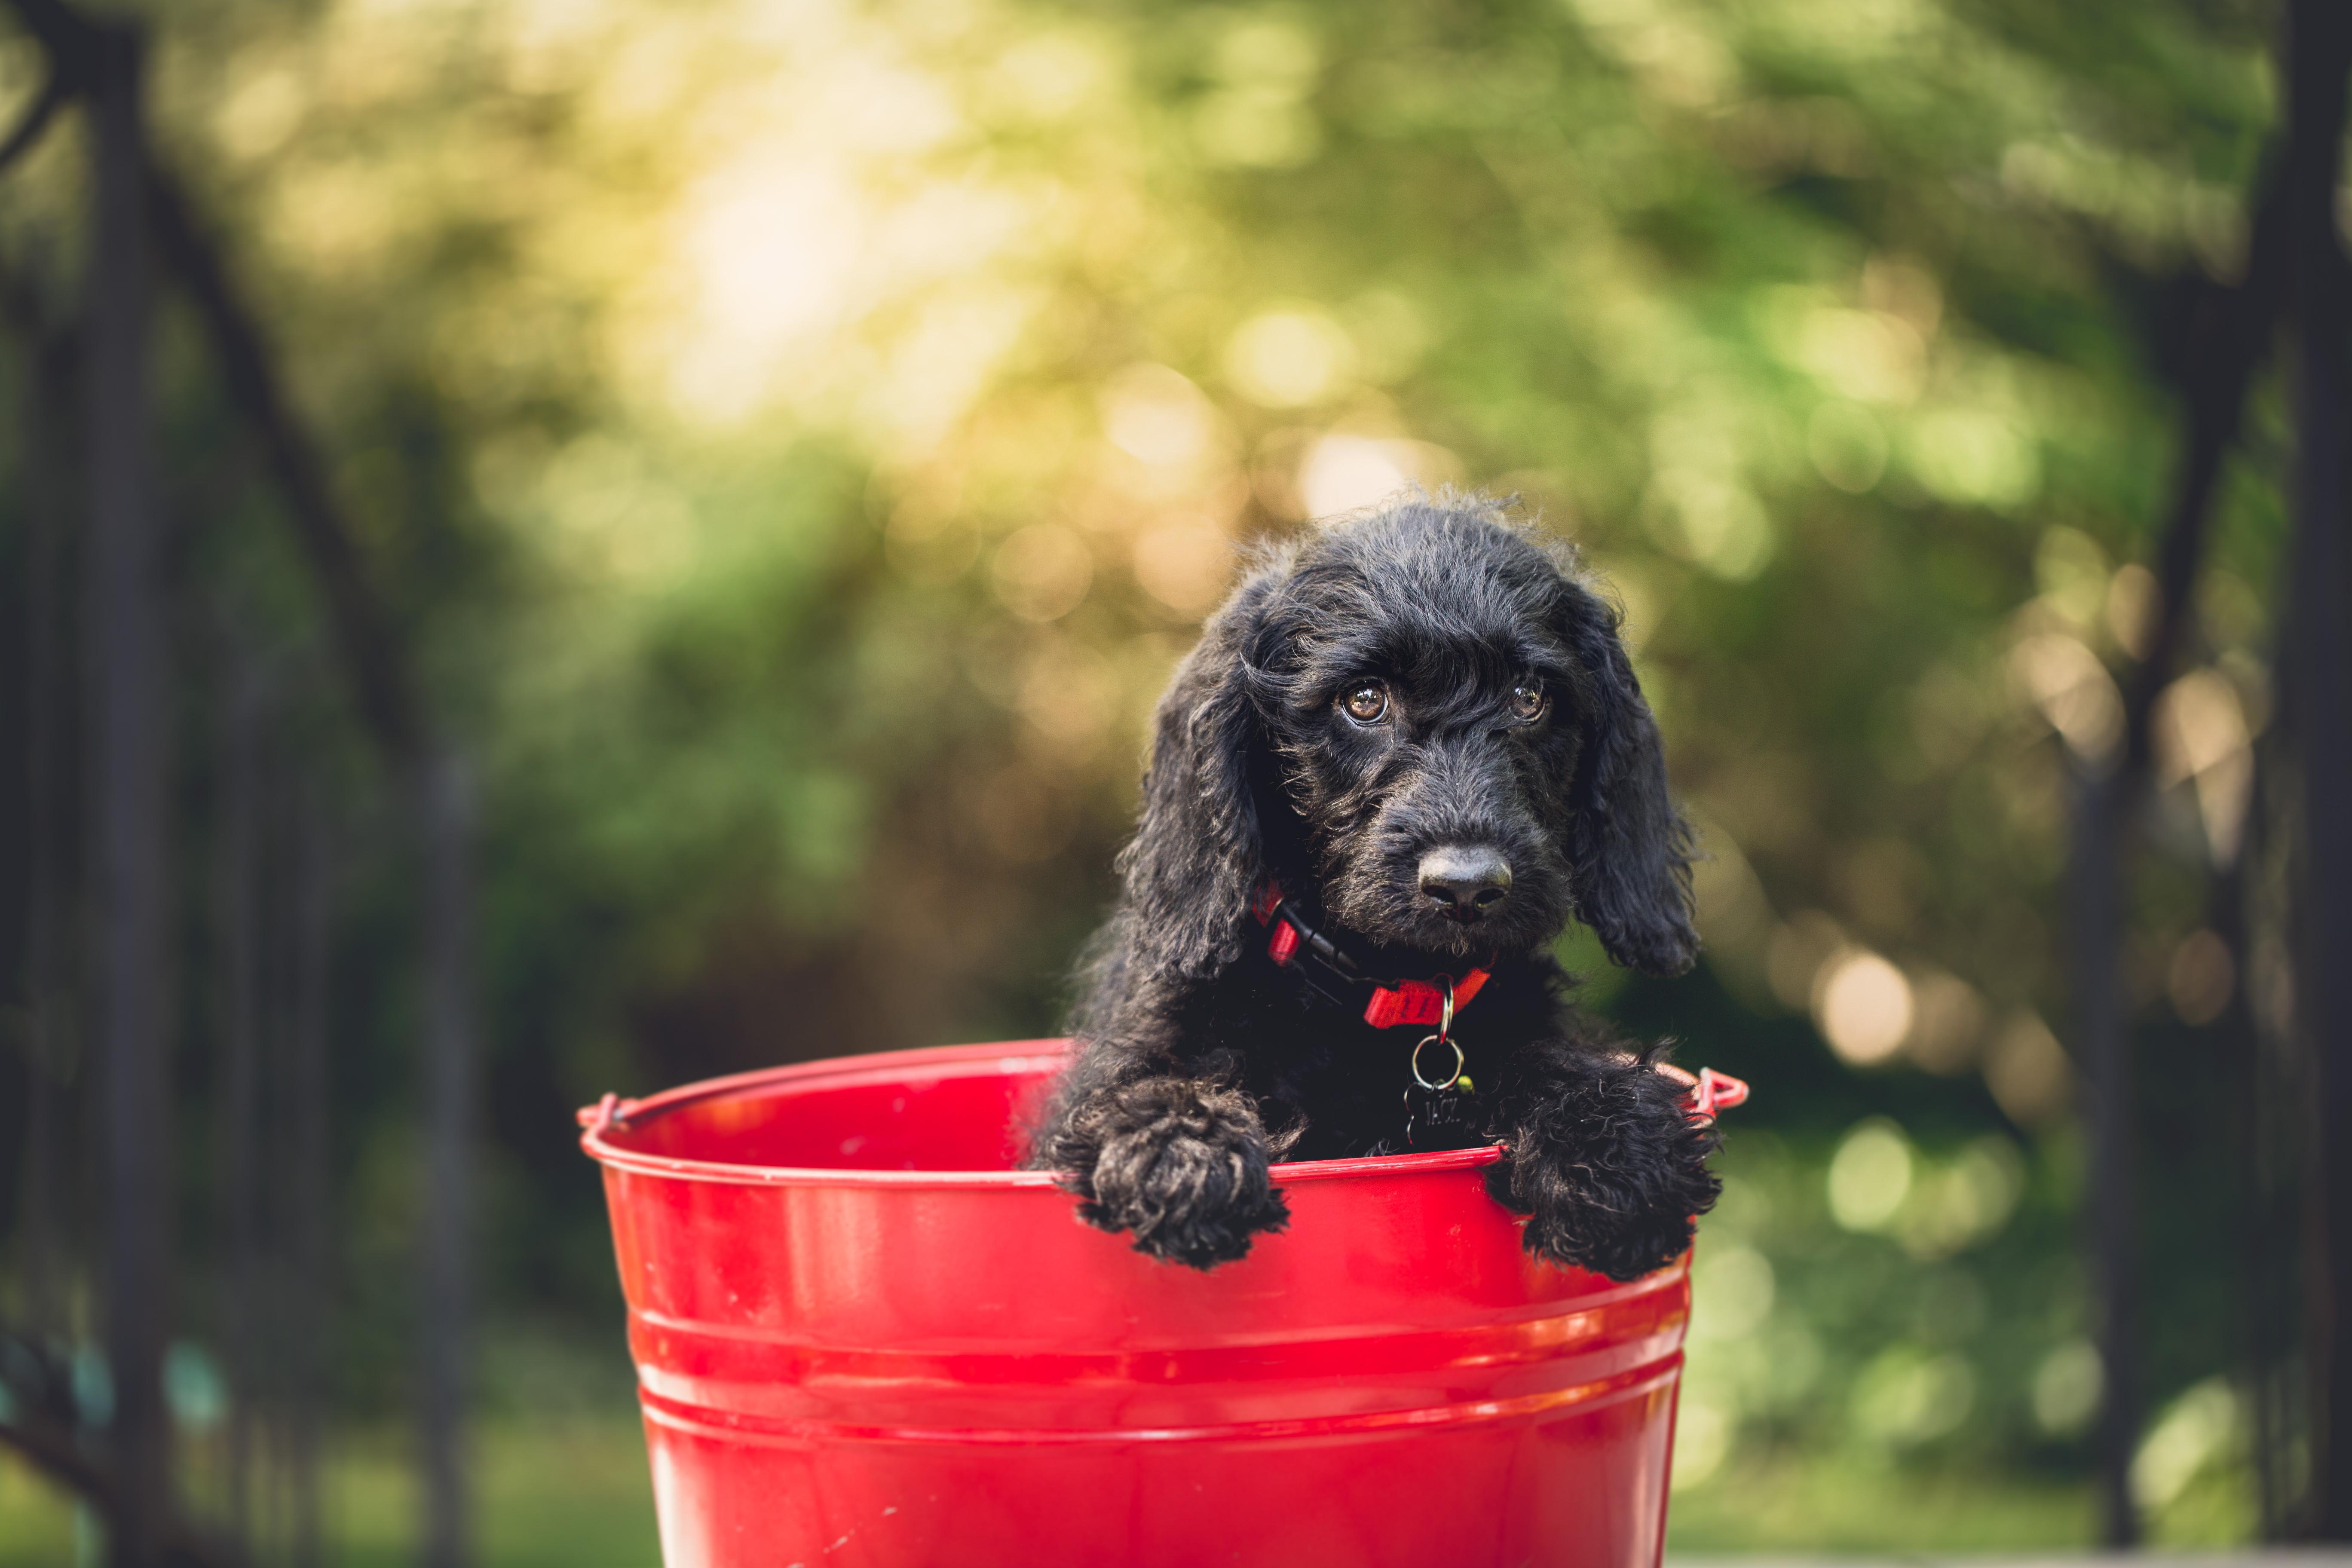 dog in a red bucket